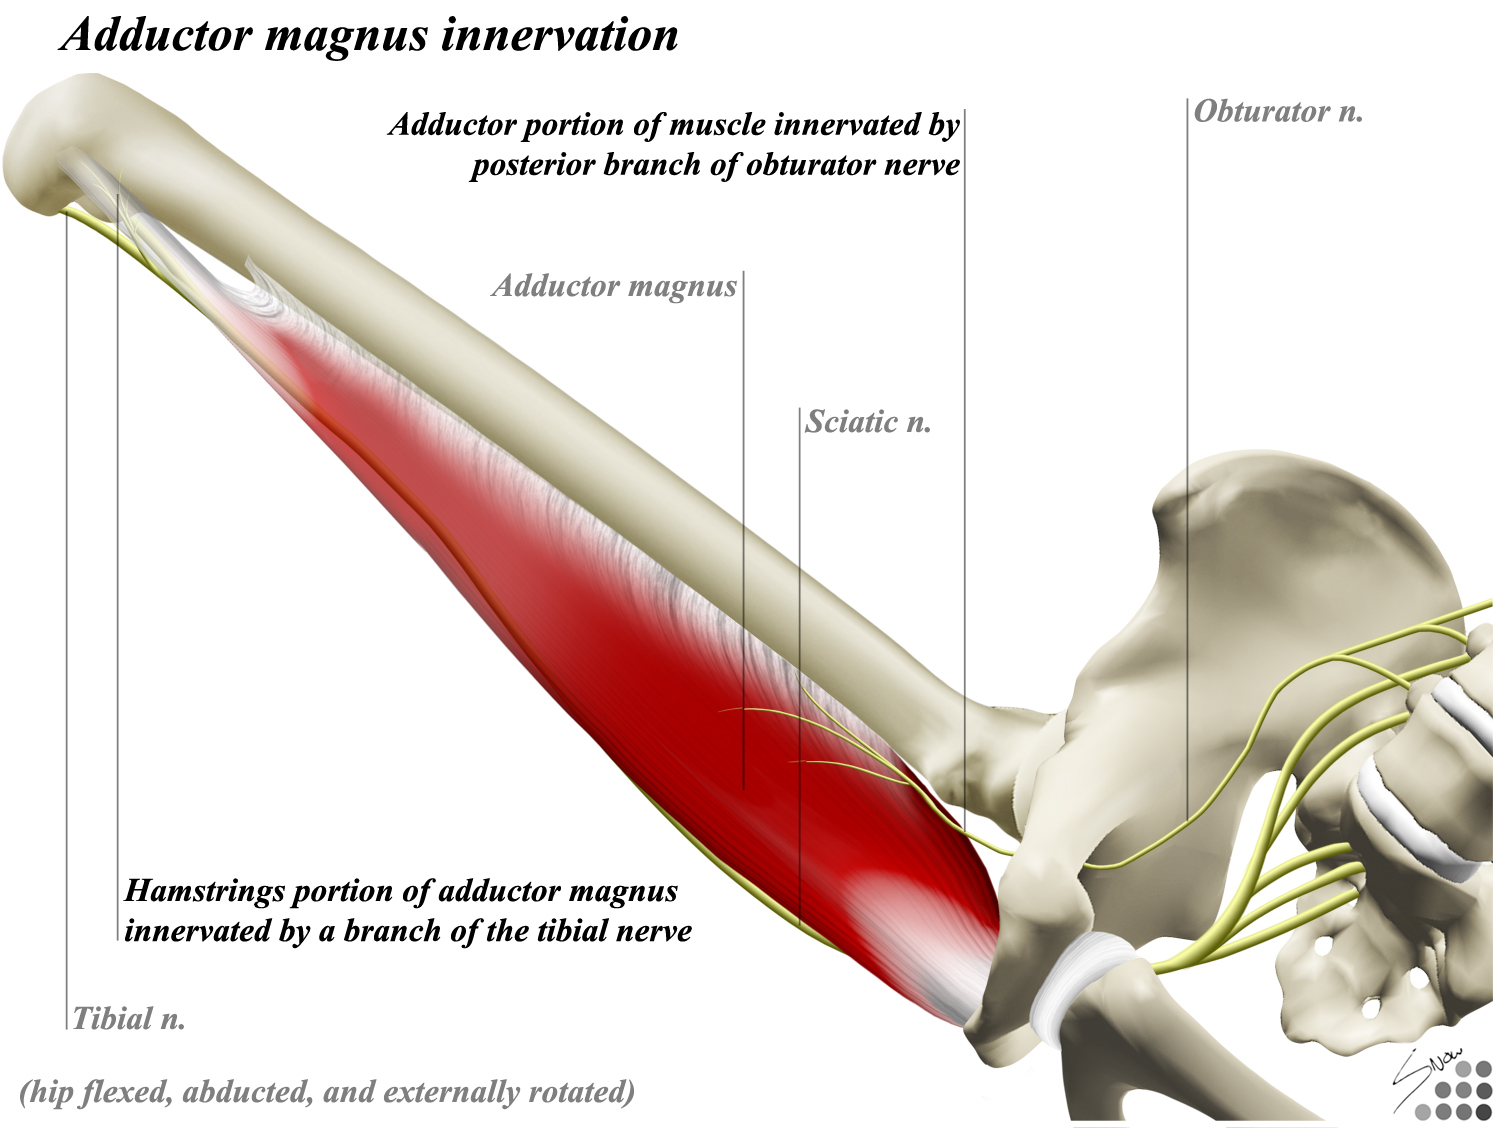 Adductor magnus - Anatomy - Orthobullets